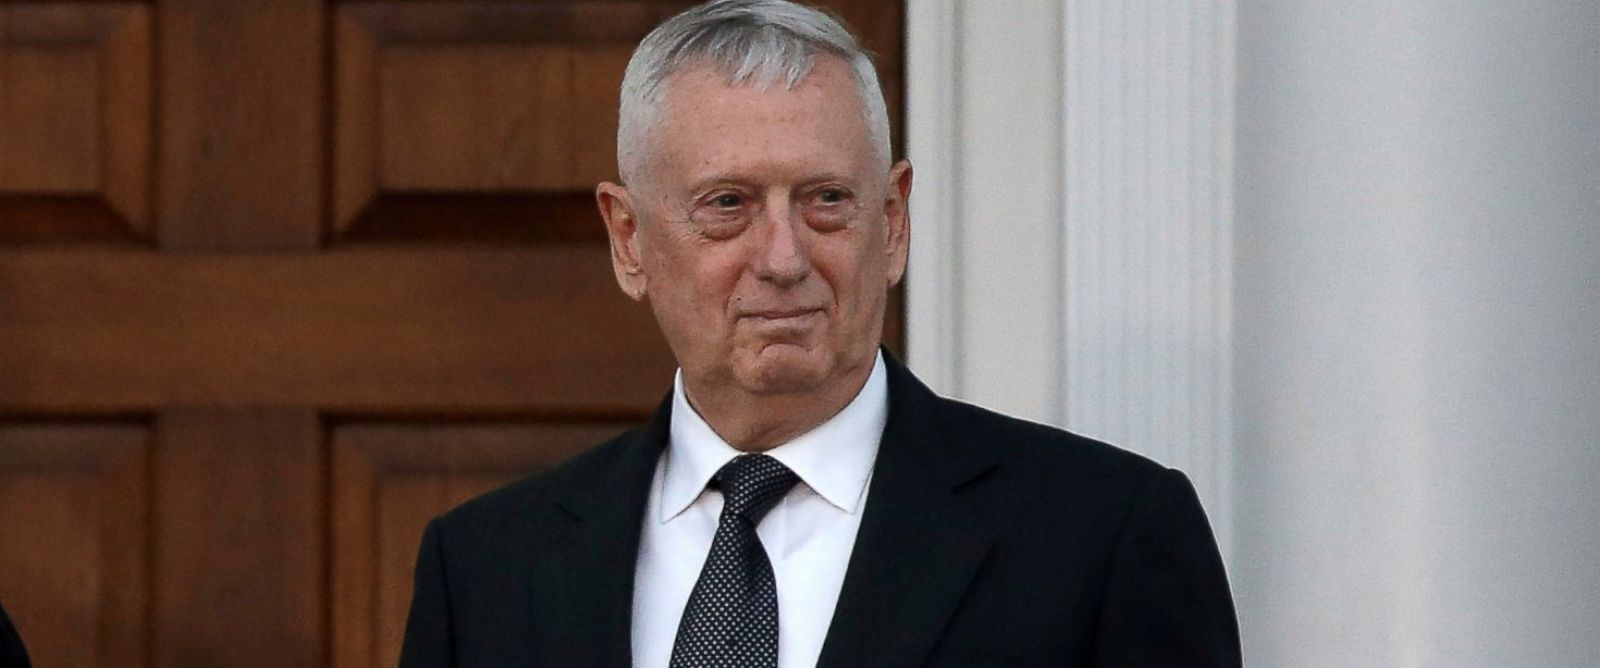 PHOTO: Retired Marine Gen. James Mattis at the main clubhouse at Trump National Golf Club in Bedminster, New Jersey, Nov. 19, 2016.